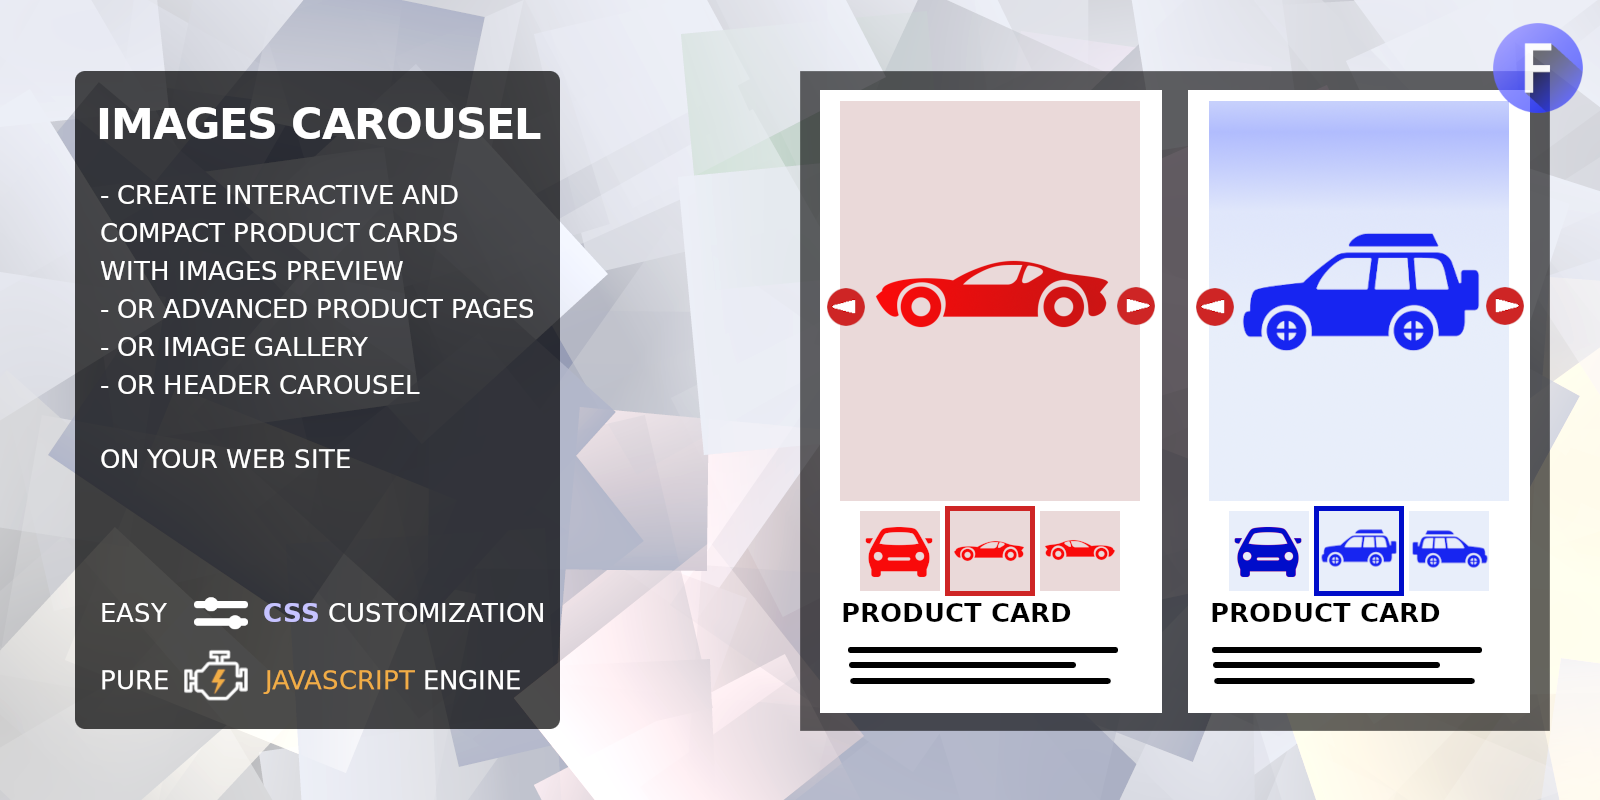 Images carousel for product cards